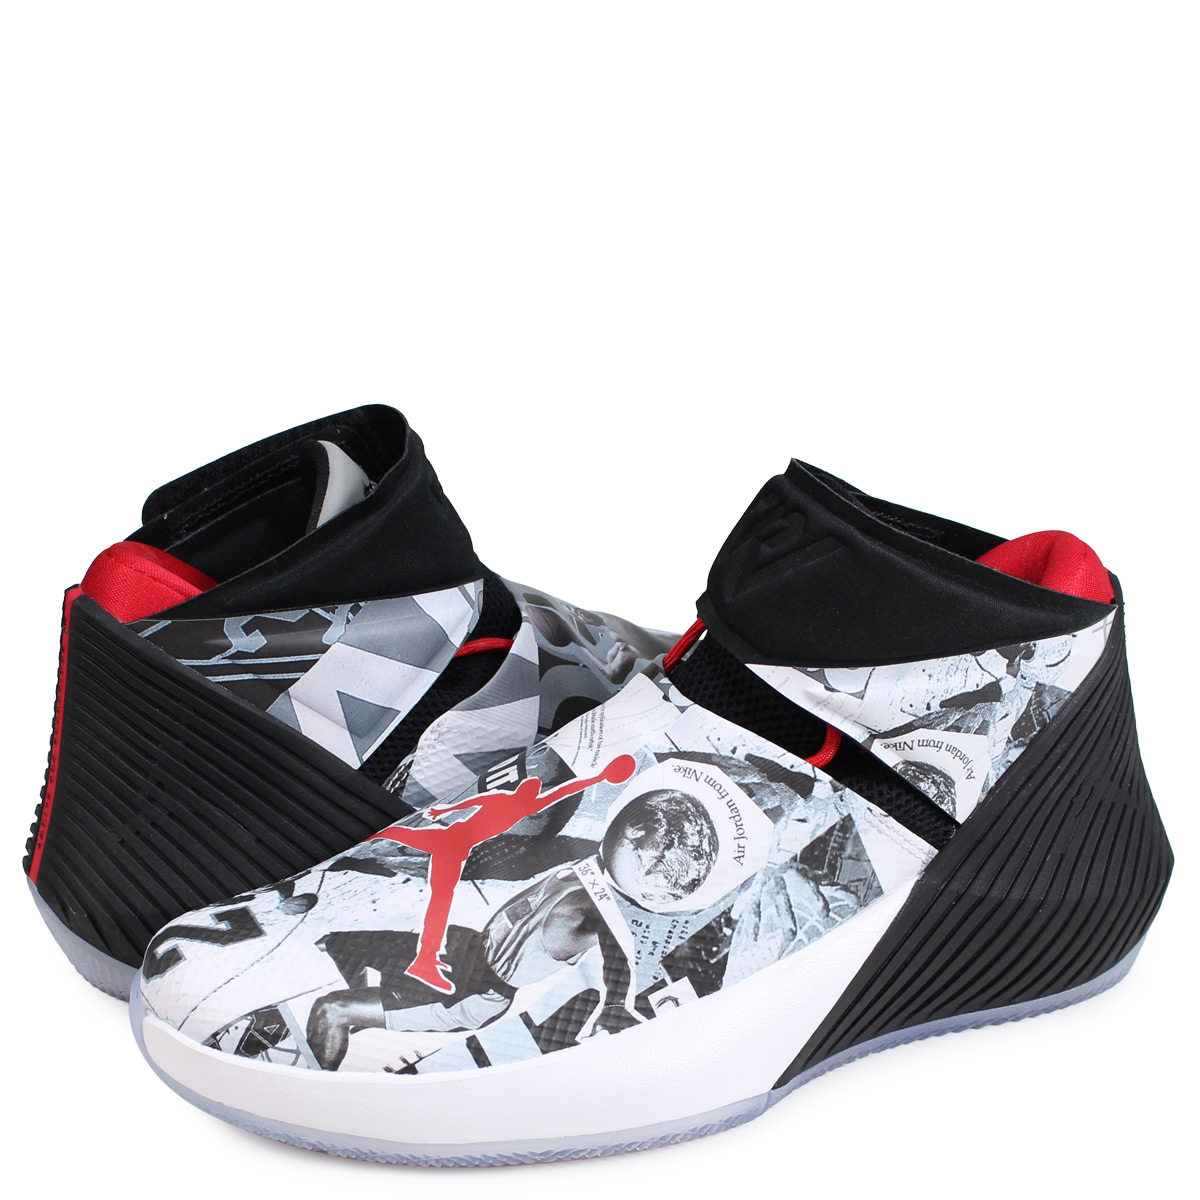 Nike NIKE Jordan sneakers men JORDAN WHY NOT ZER0.1 MIRROR IMAGE white  AA2510-104 9e57b299e55e